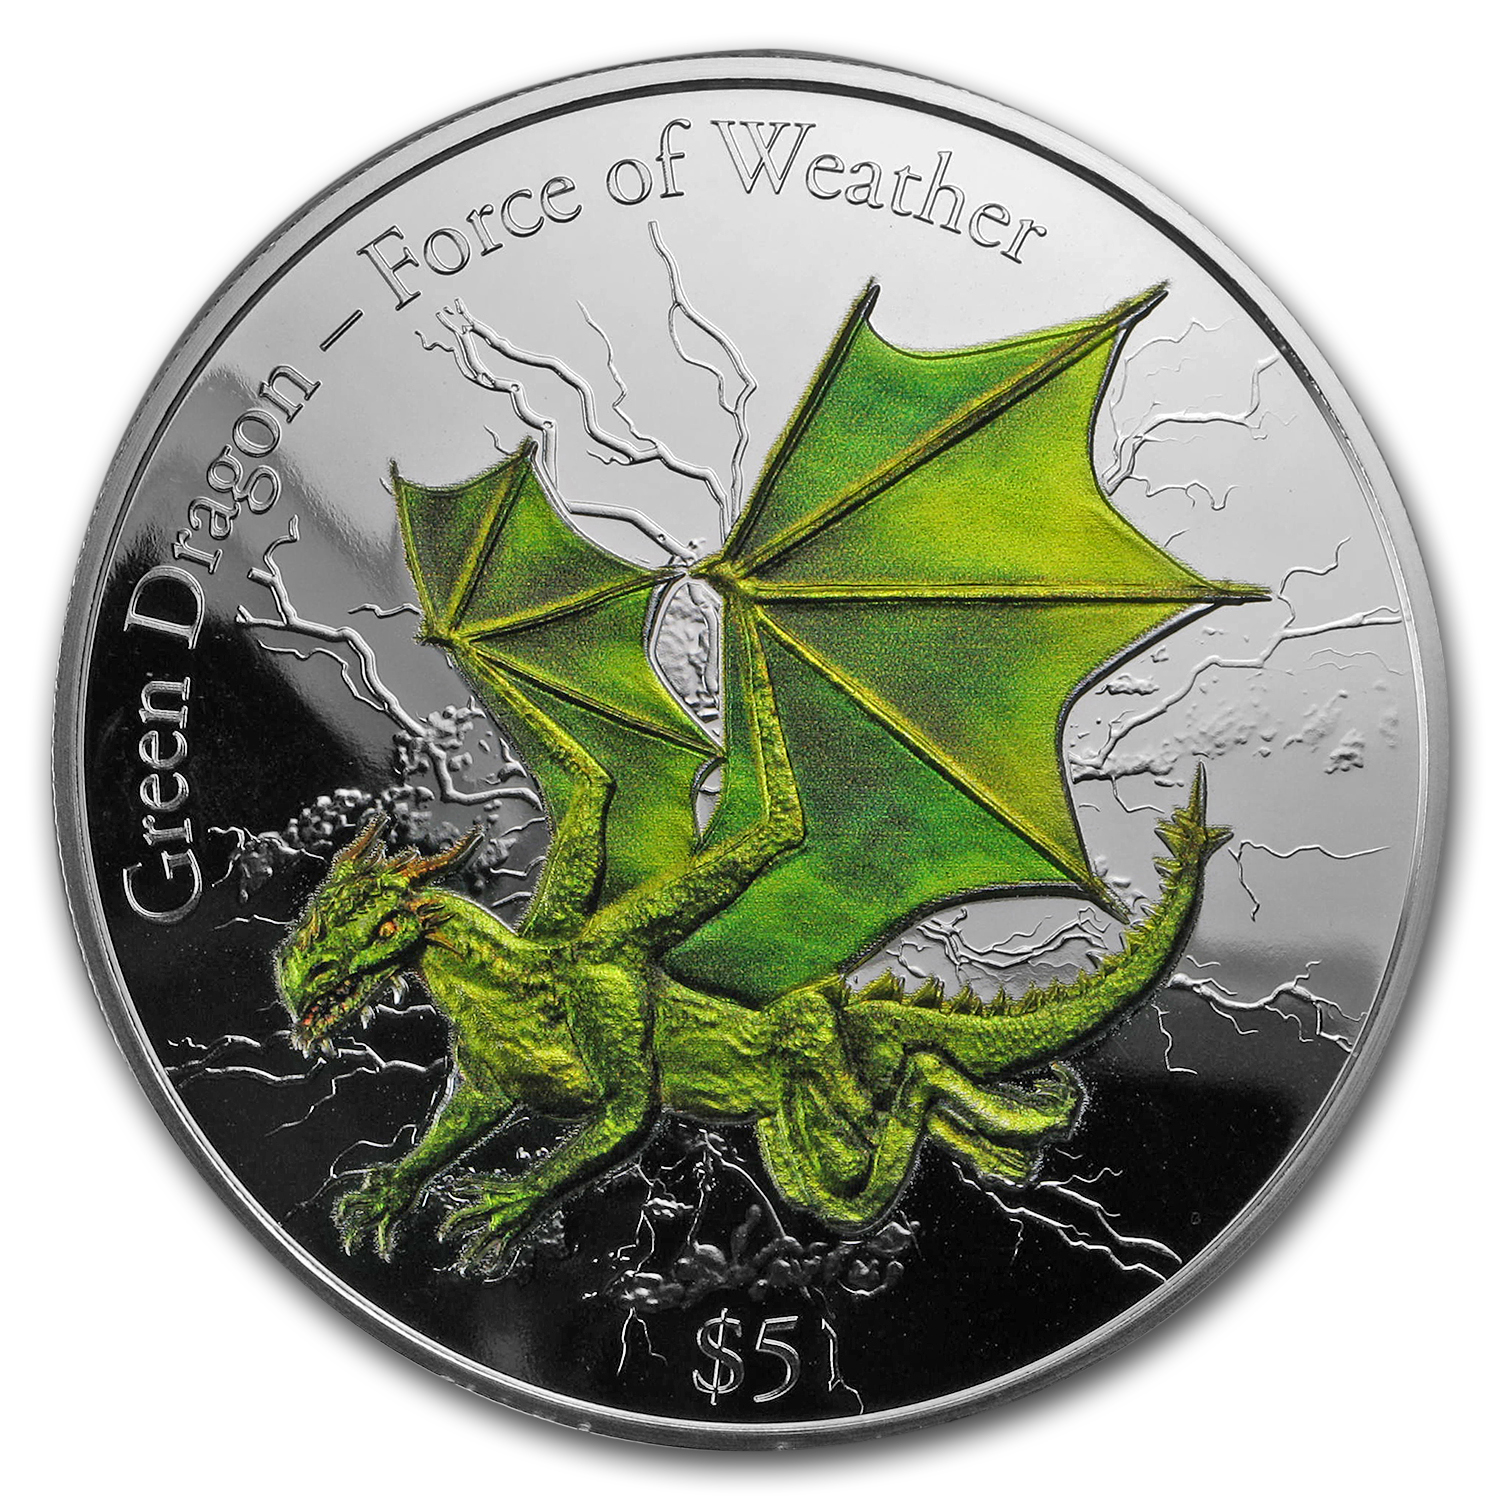 2017 Fiji 3 oz Silver 3D-HR Force of Weather: Green Dragon